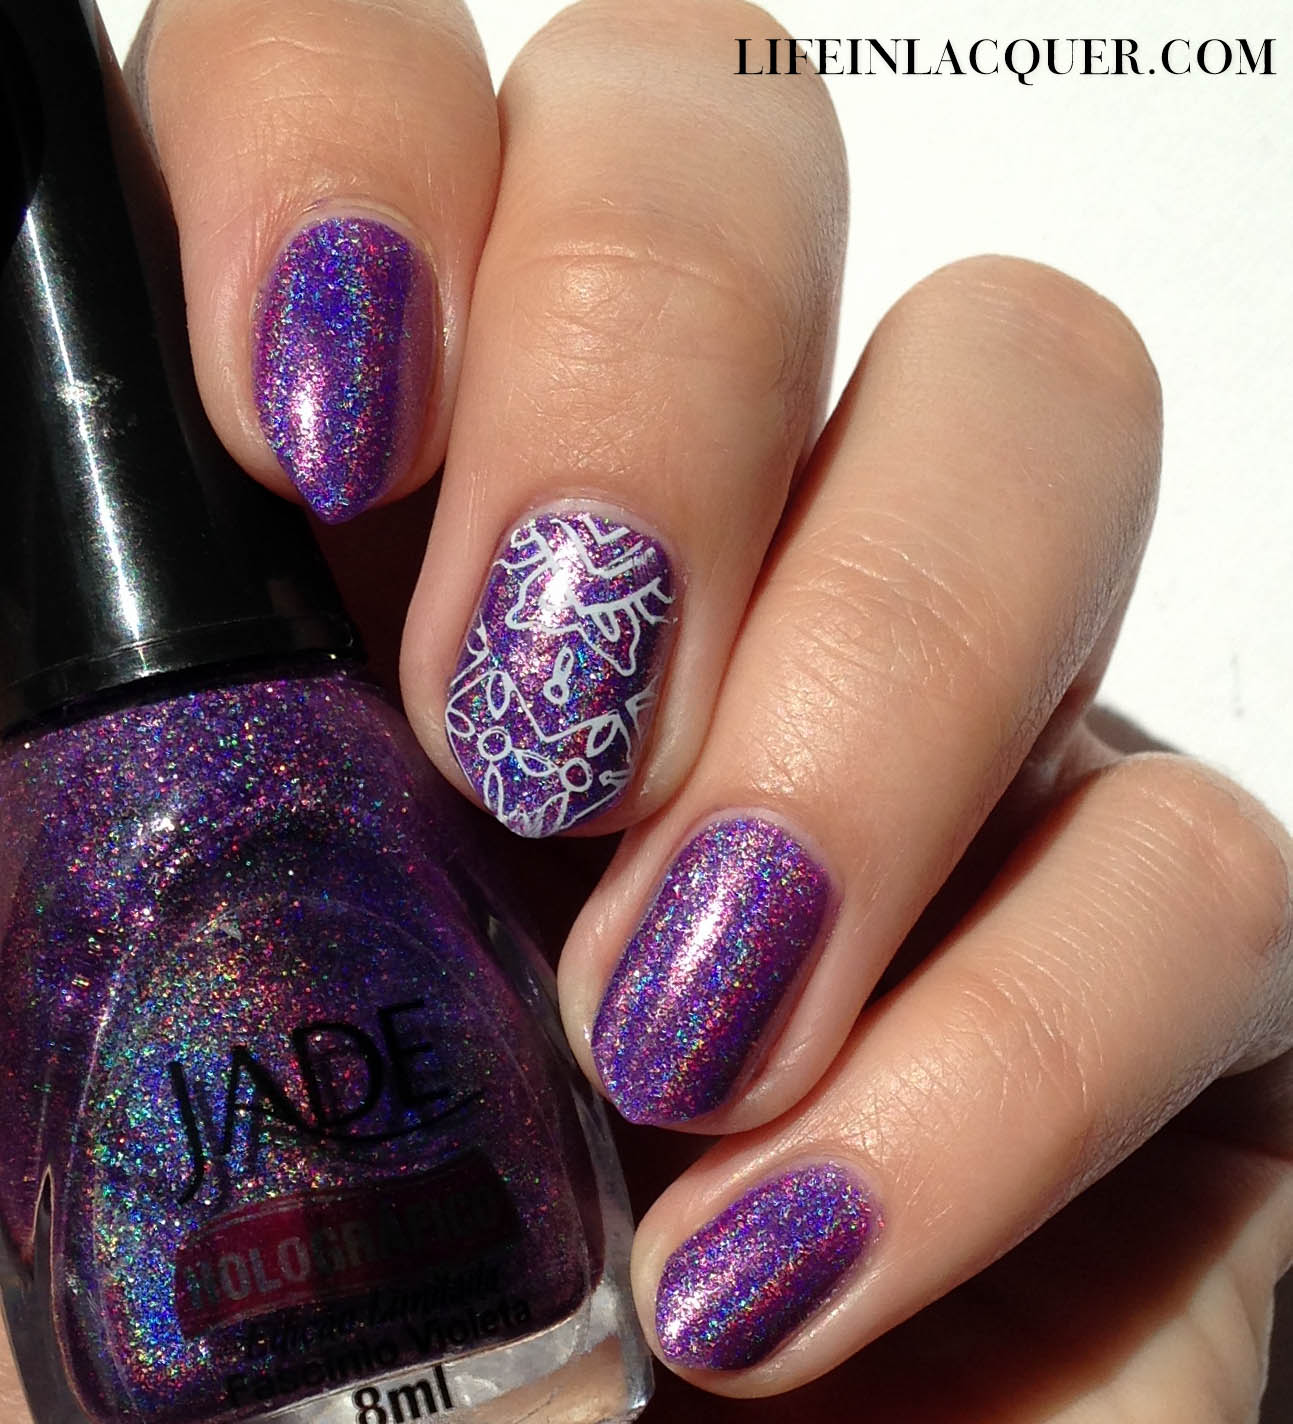 Life in Lacquer: Jade Holografico Stamping Nail Art